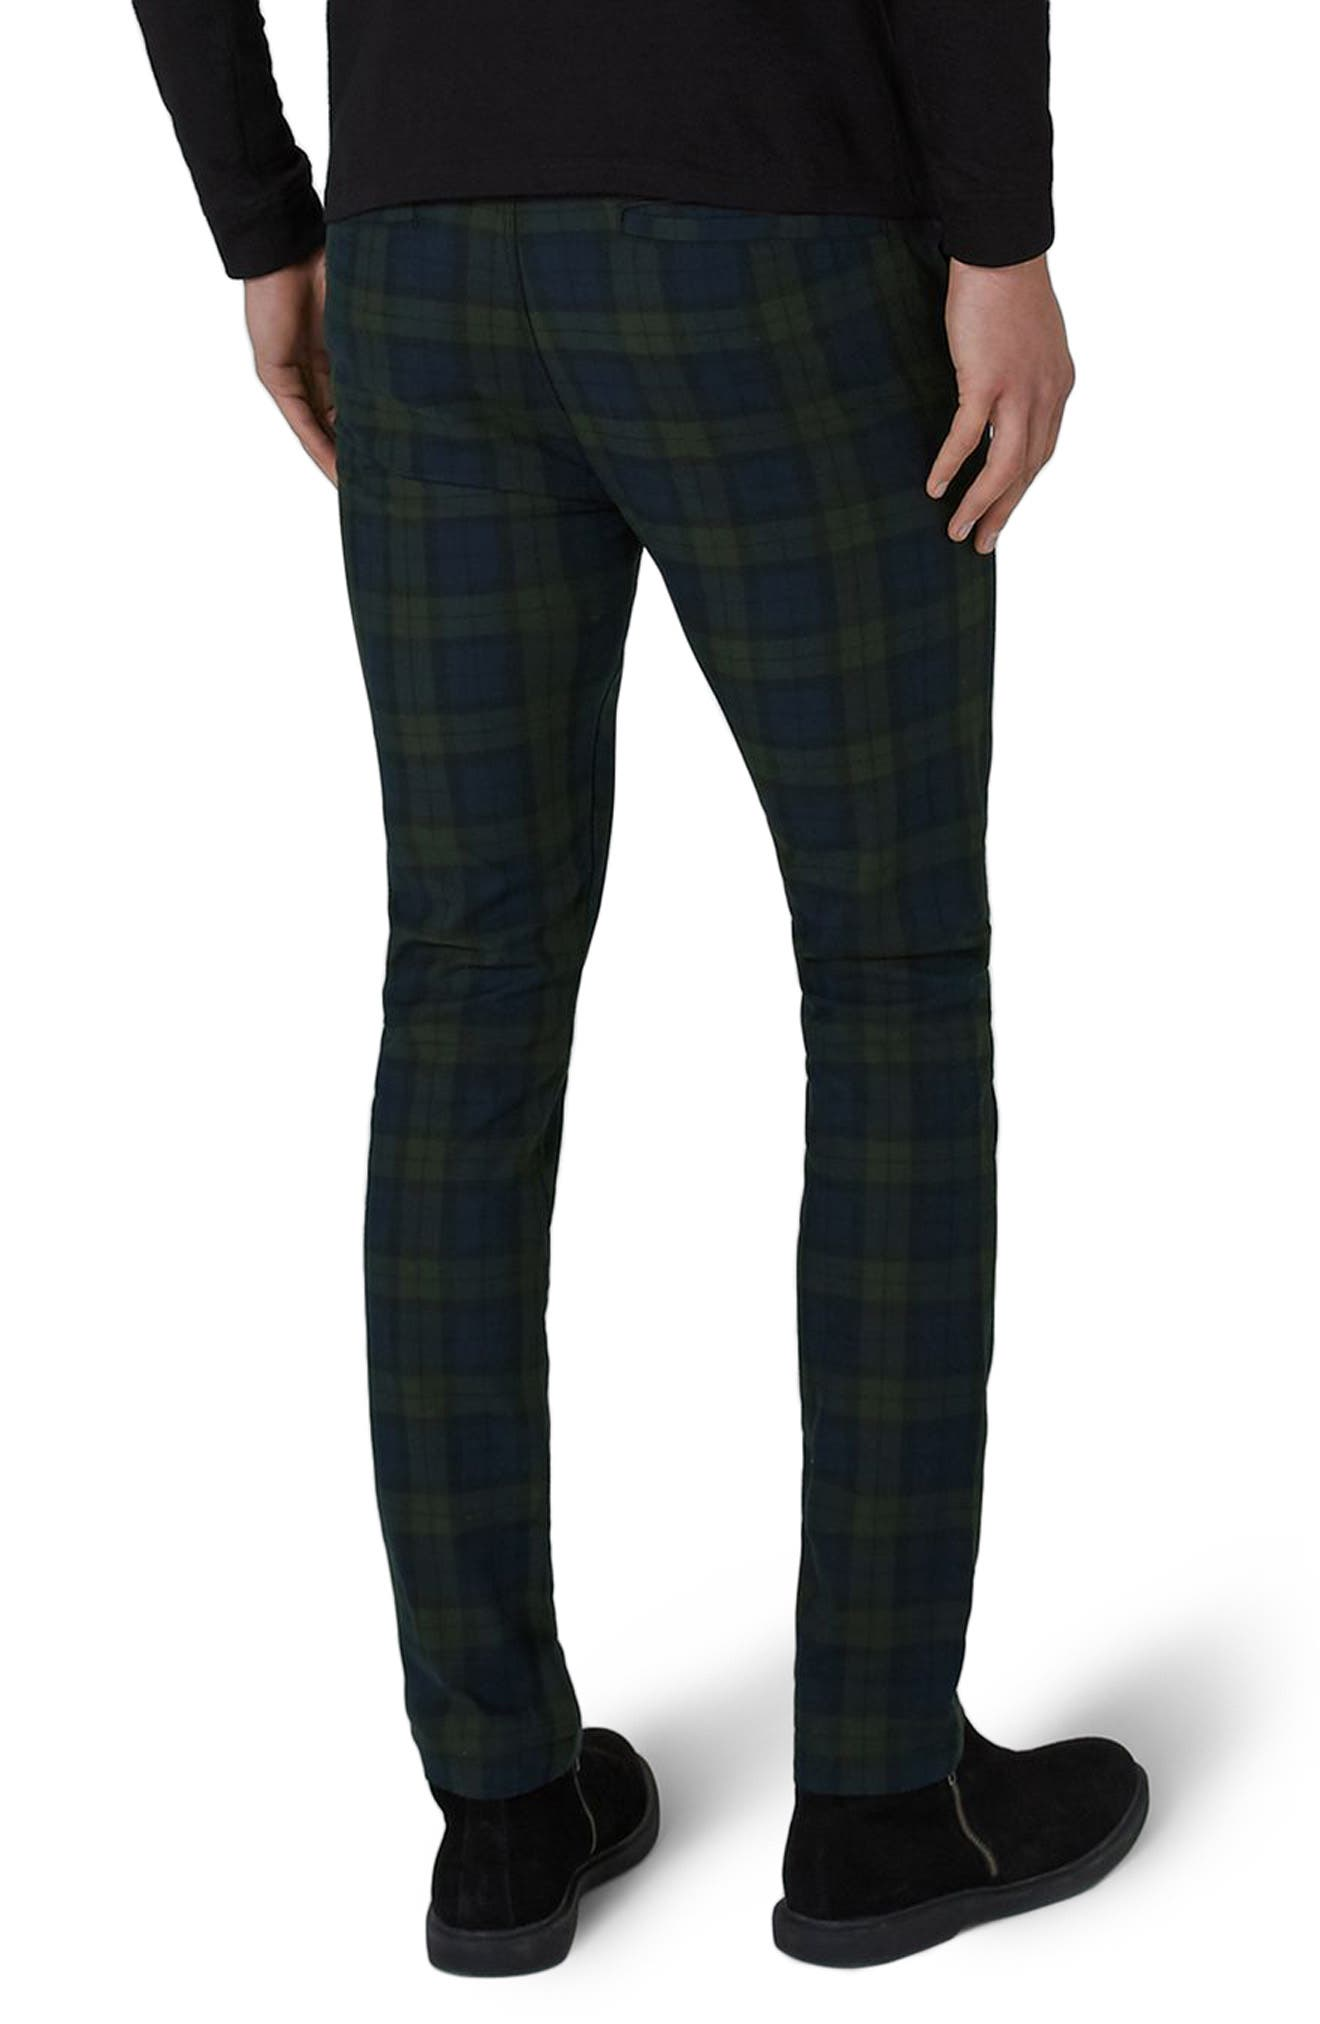 Alternate Image 2  - Topman Black Watch Check Stretch Skinny Fit Trousers